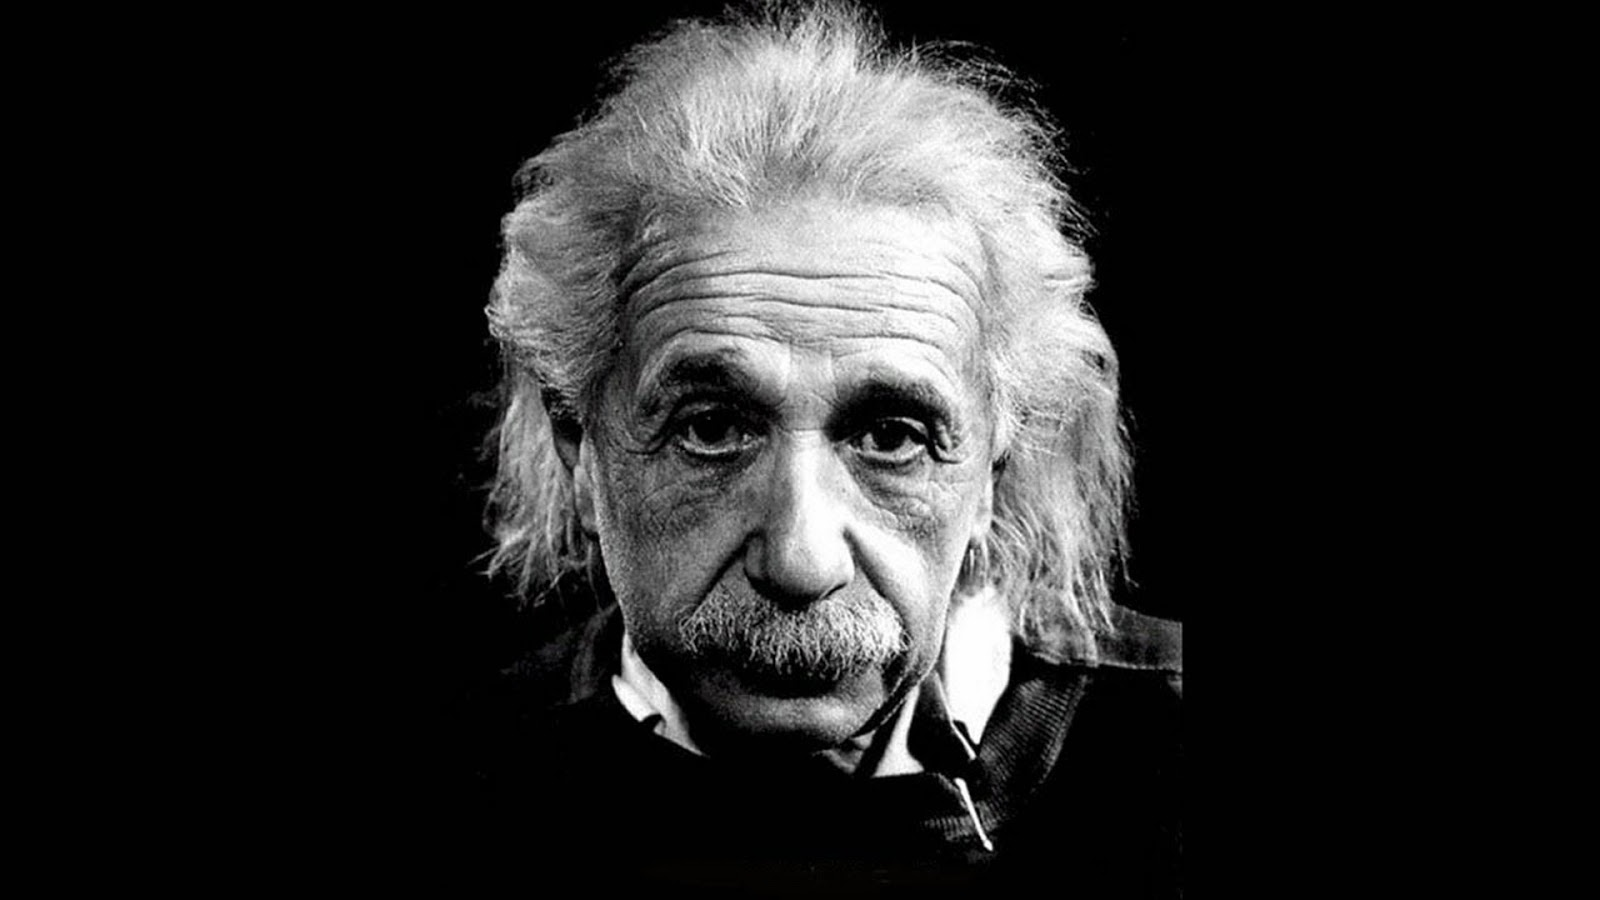 Albert Einstein b+w photo